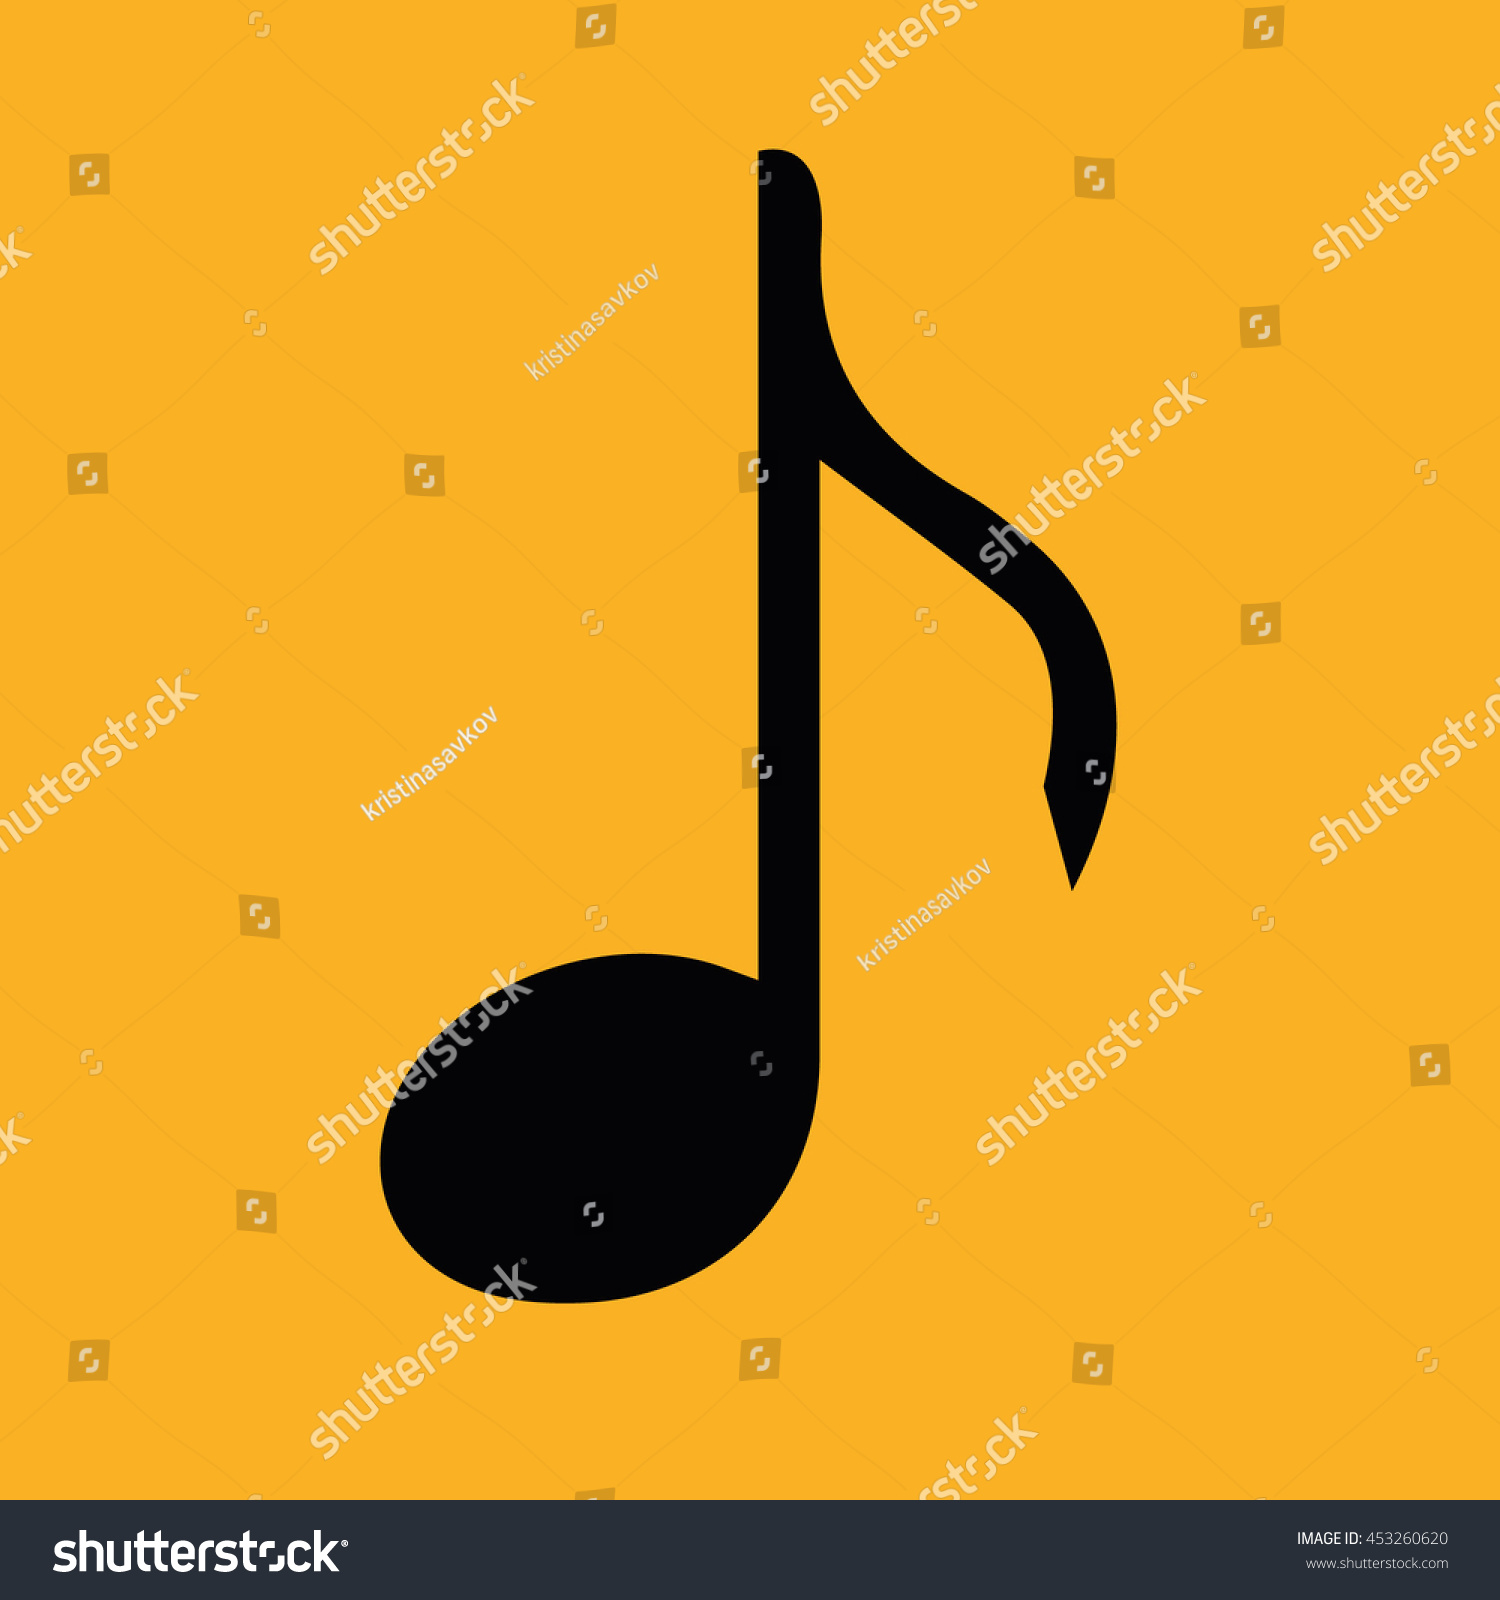 Black music note vector icon. Yellow background | EZ Canvas